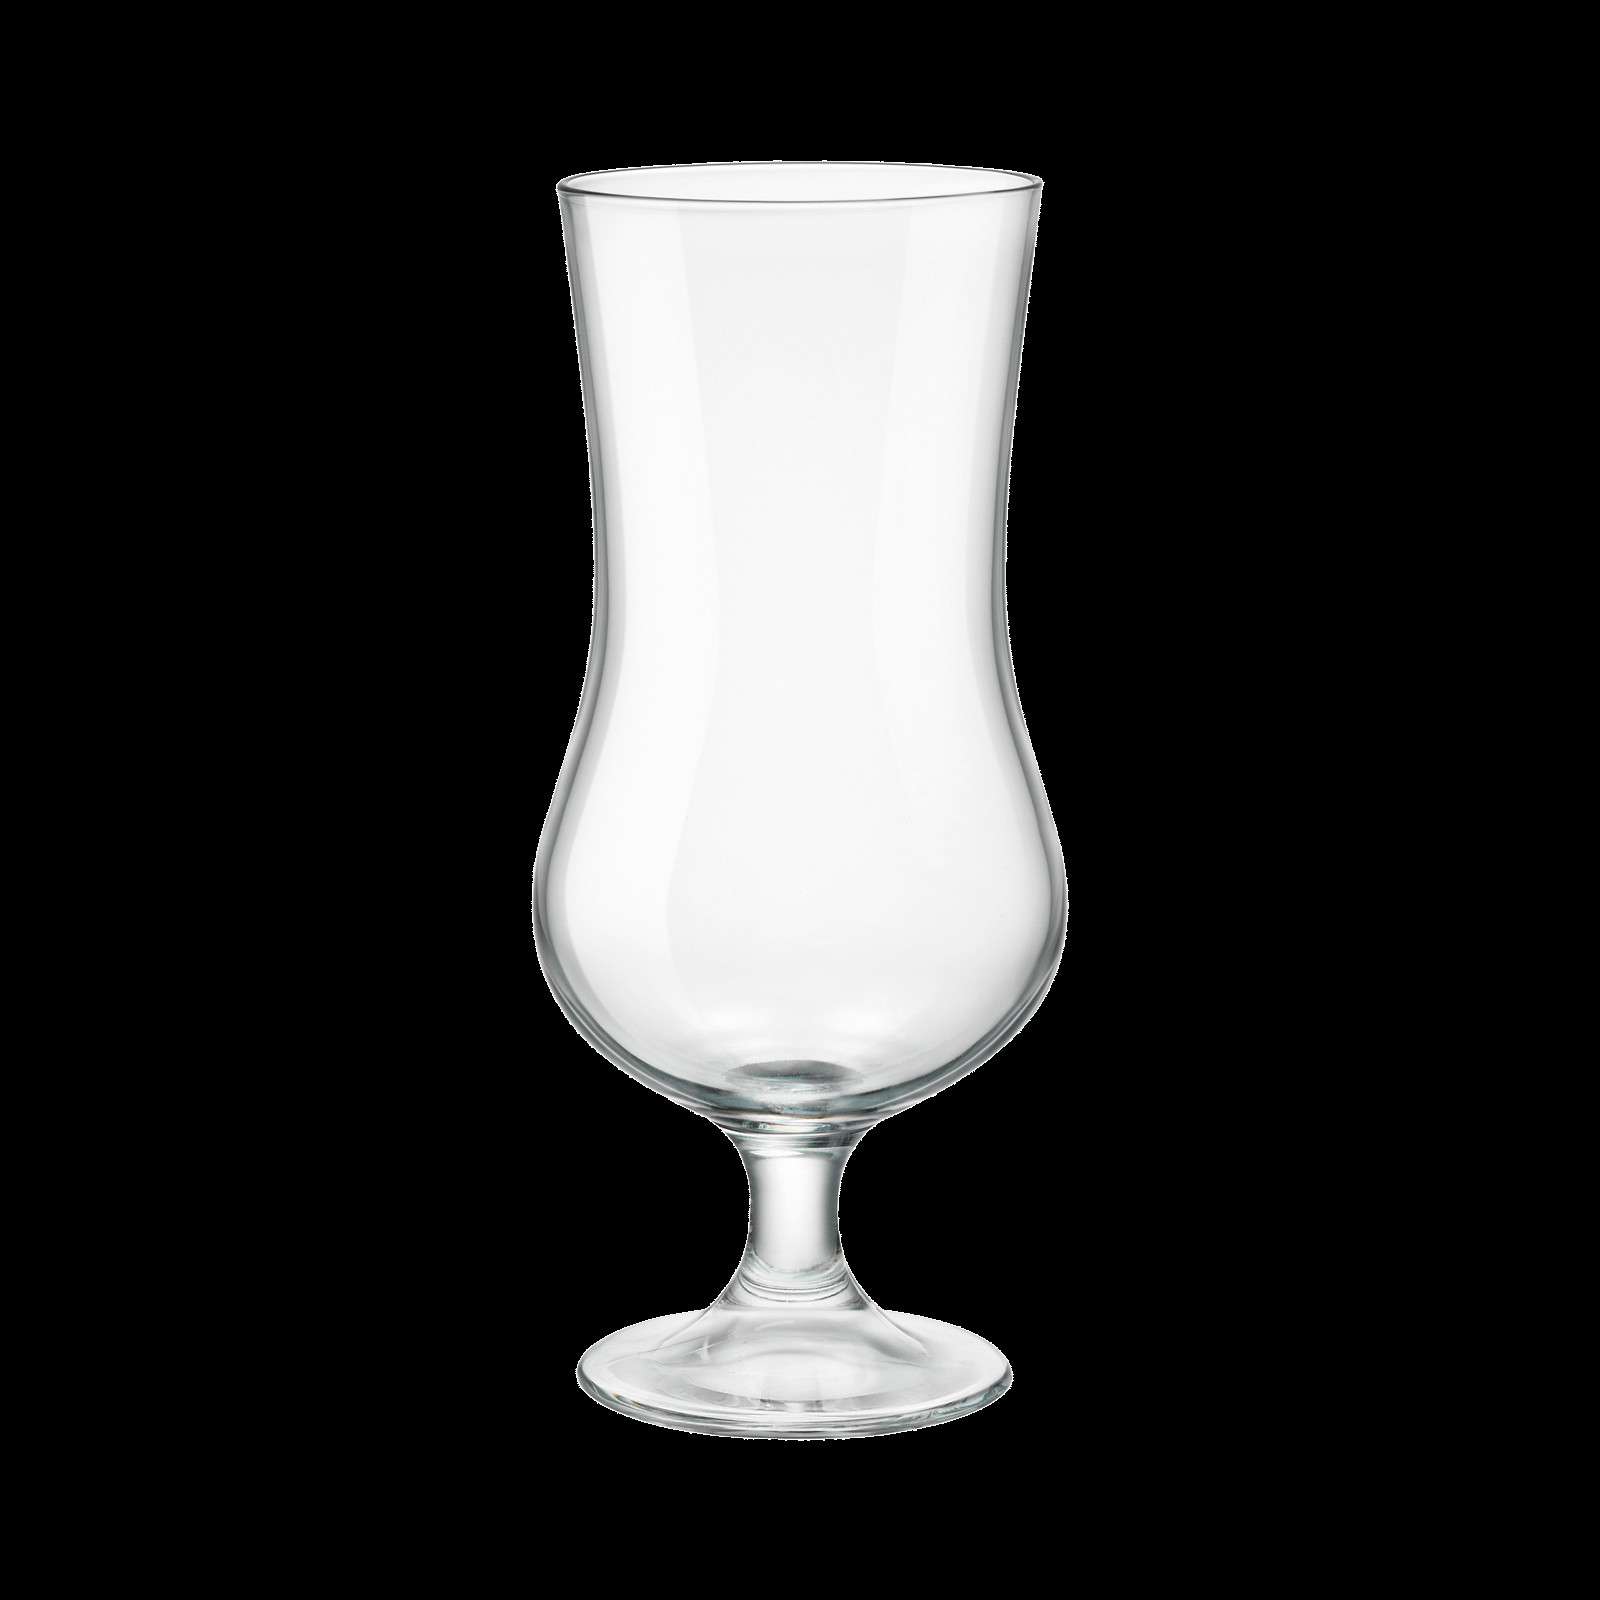 Large Footed Crystal Vase Of Archivi Products Bormioli Rocco In Large Beer Glass